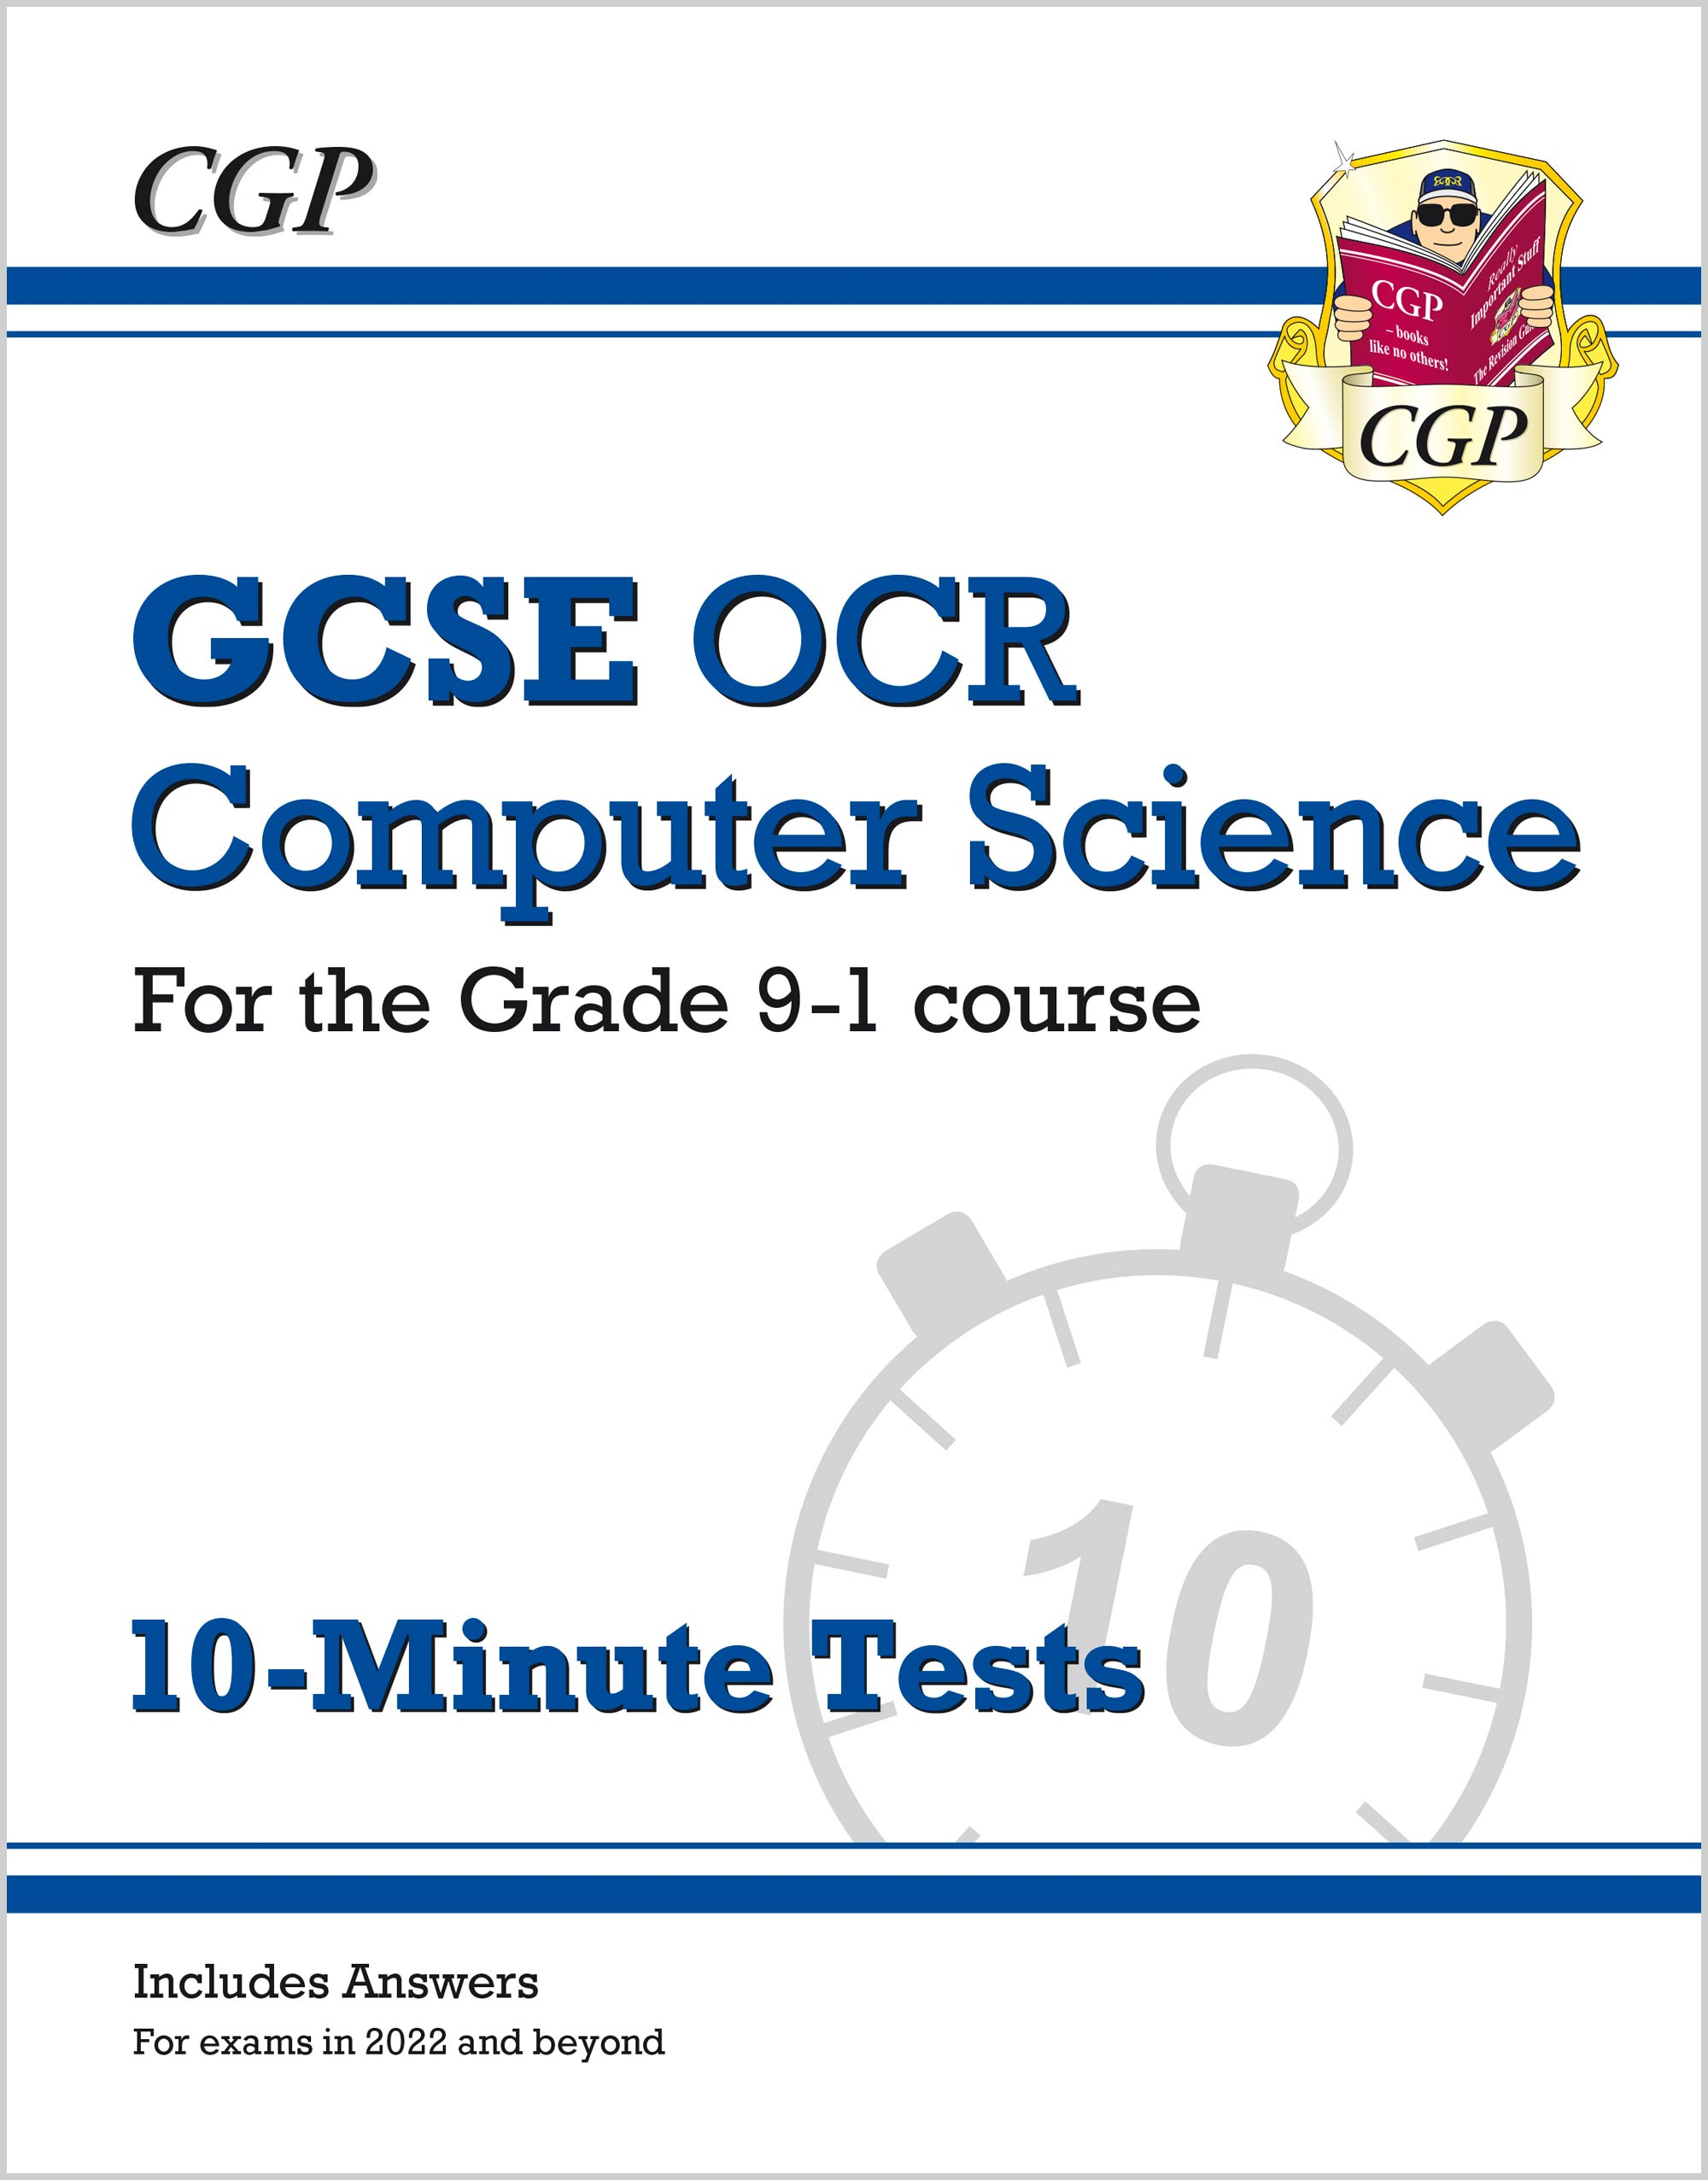 COXP42 - New GCSE Computer Science OCR 10-Minute Tests - for exams in 2022 and beyond (includes answ